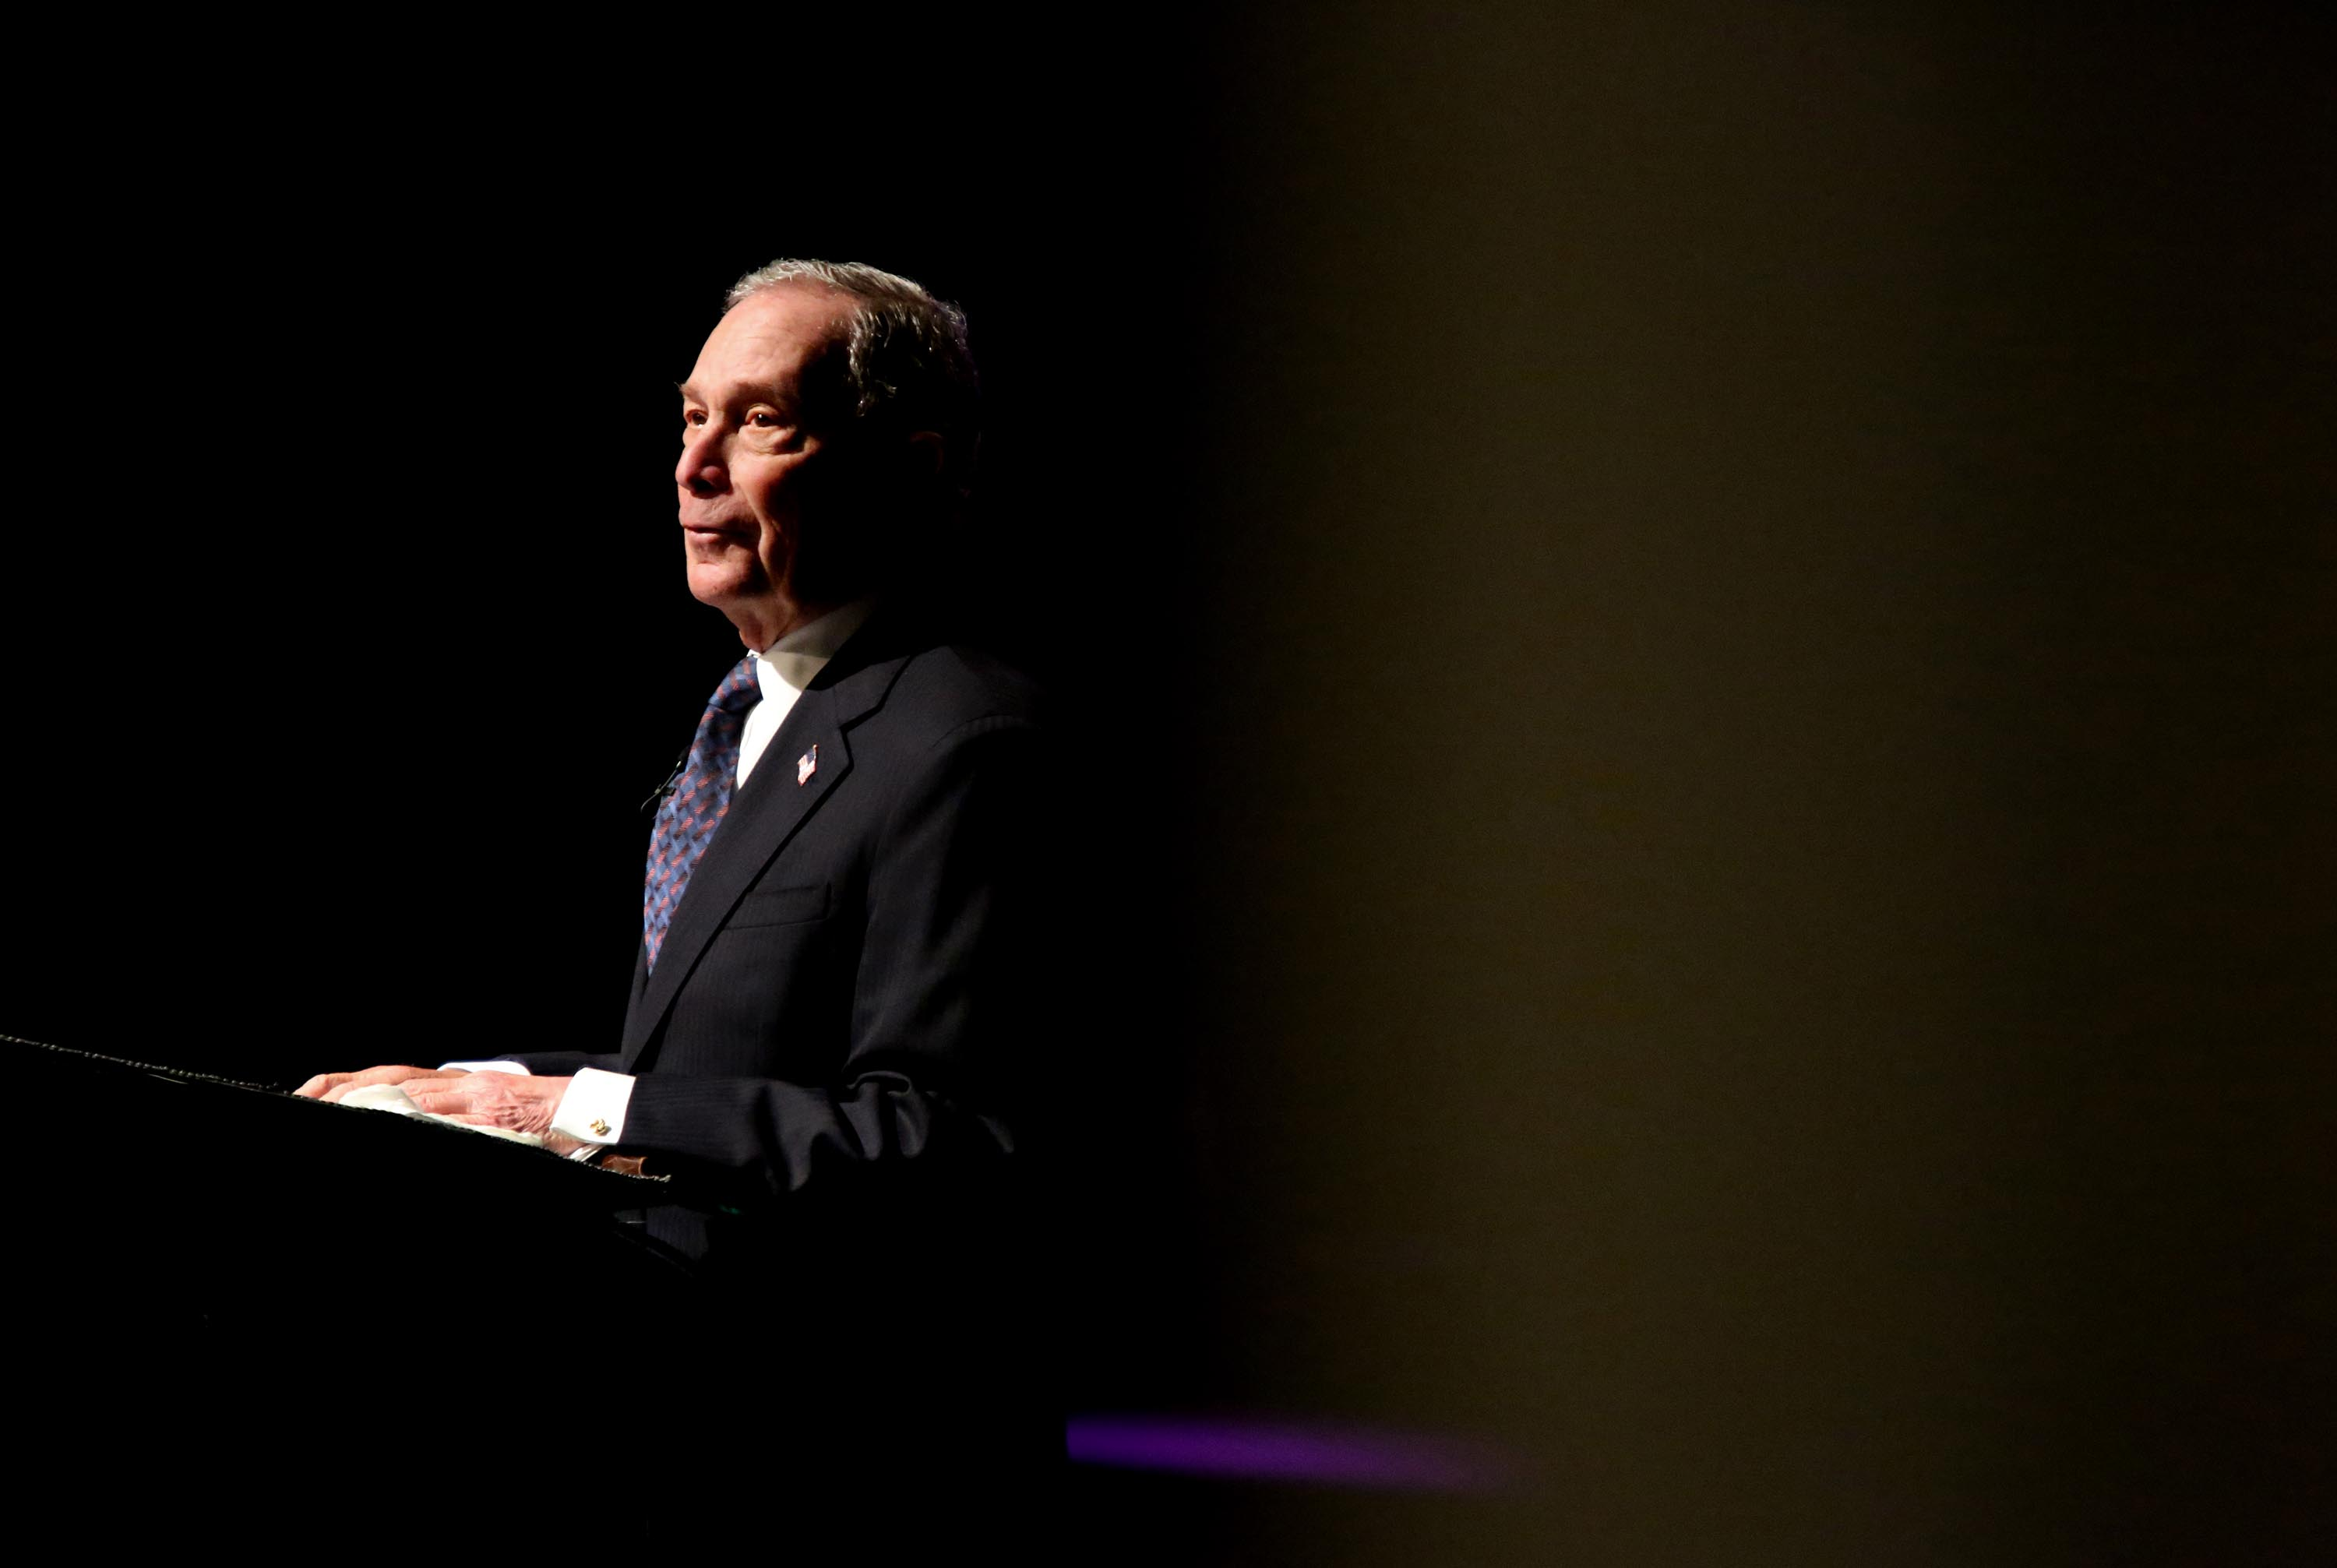 Bloomberg claims he wasn't asked about stop and frisk until he ran for president. That's not true.